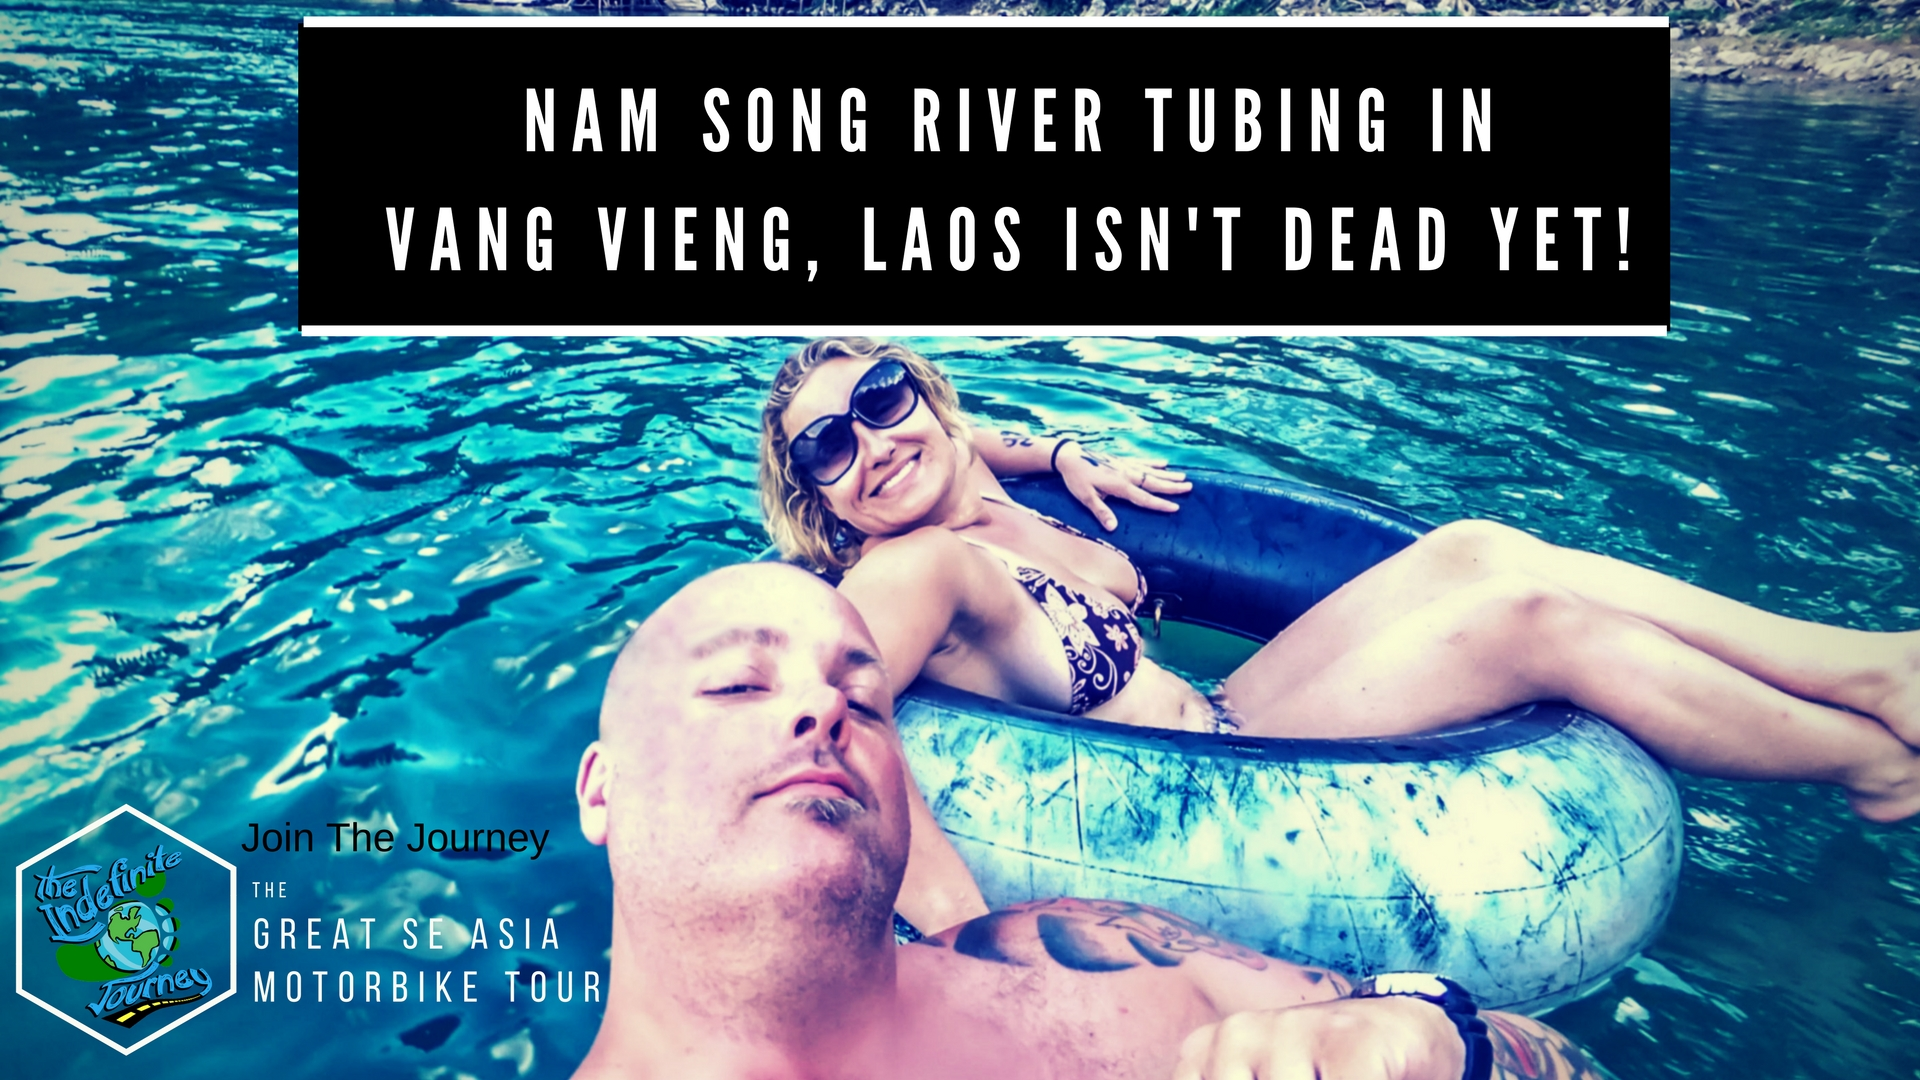 Nam Song River Tubing in Vang Vieng, Laos Isn't Dead Yet!